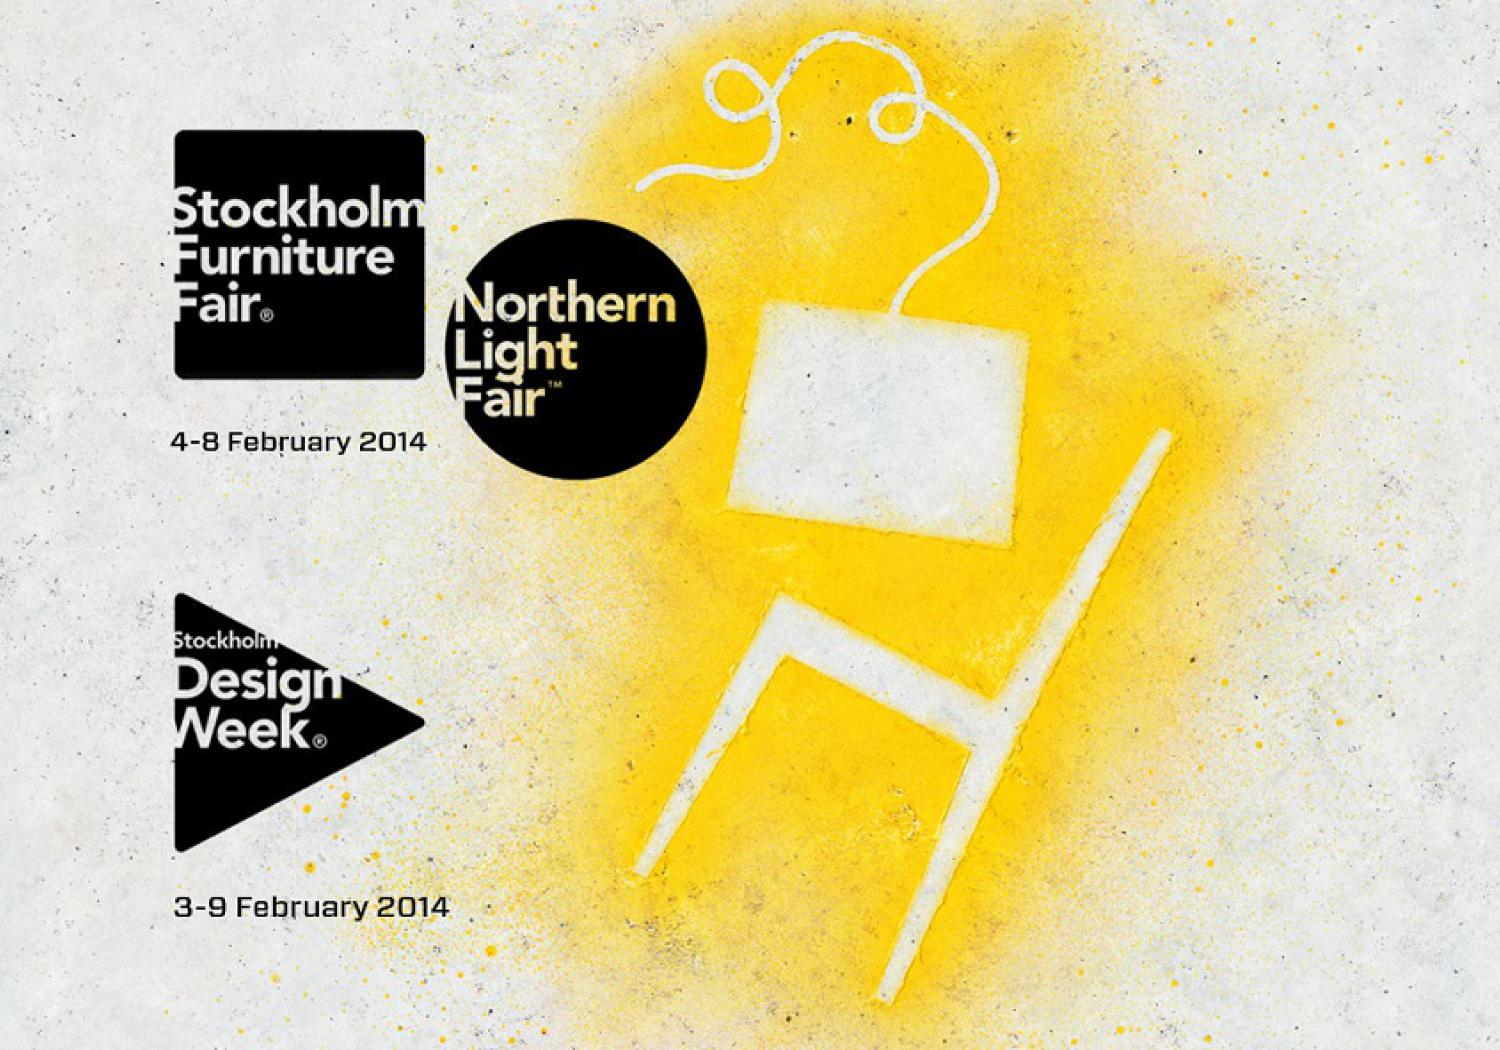 Guest of Honour - Gam Fratesi at this year's Stockholm Furniture Fair